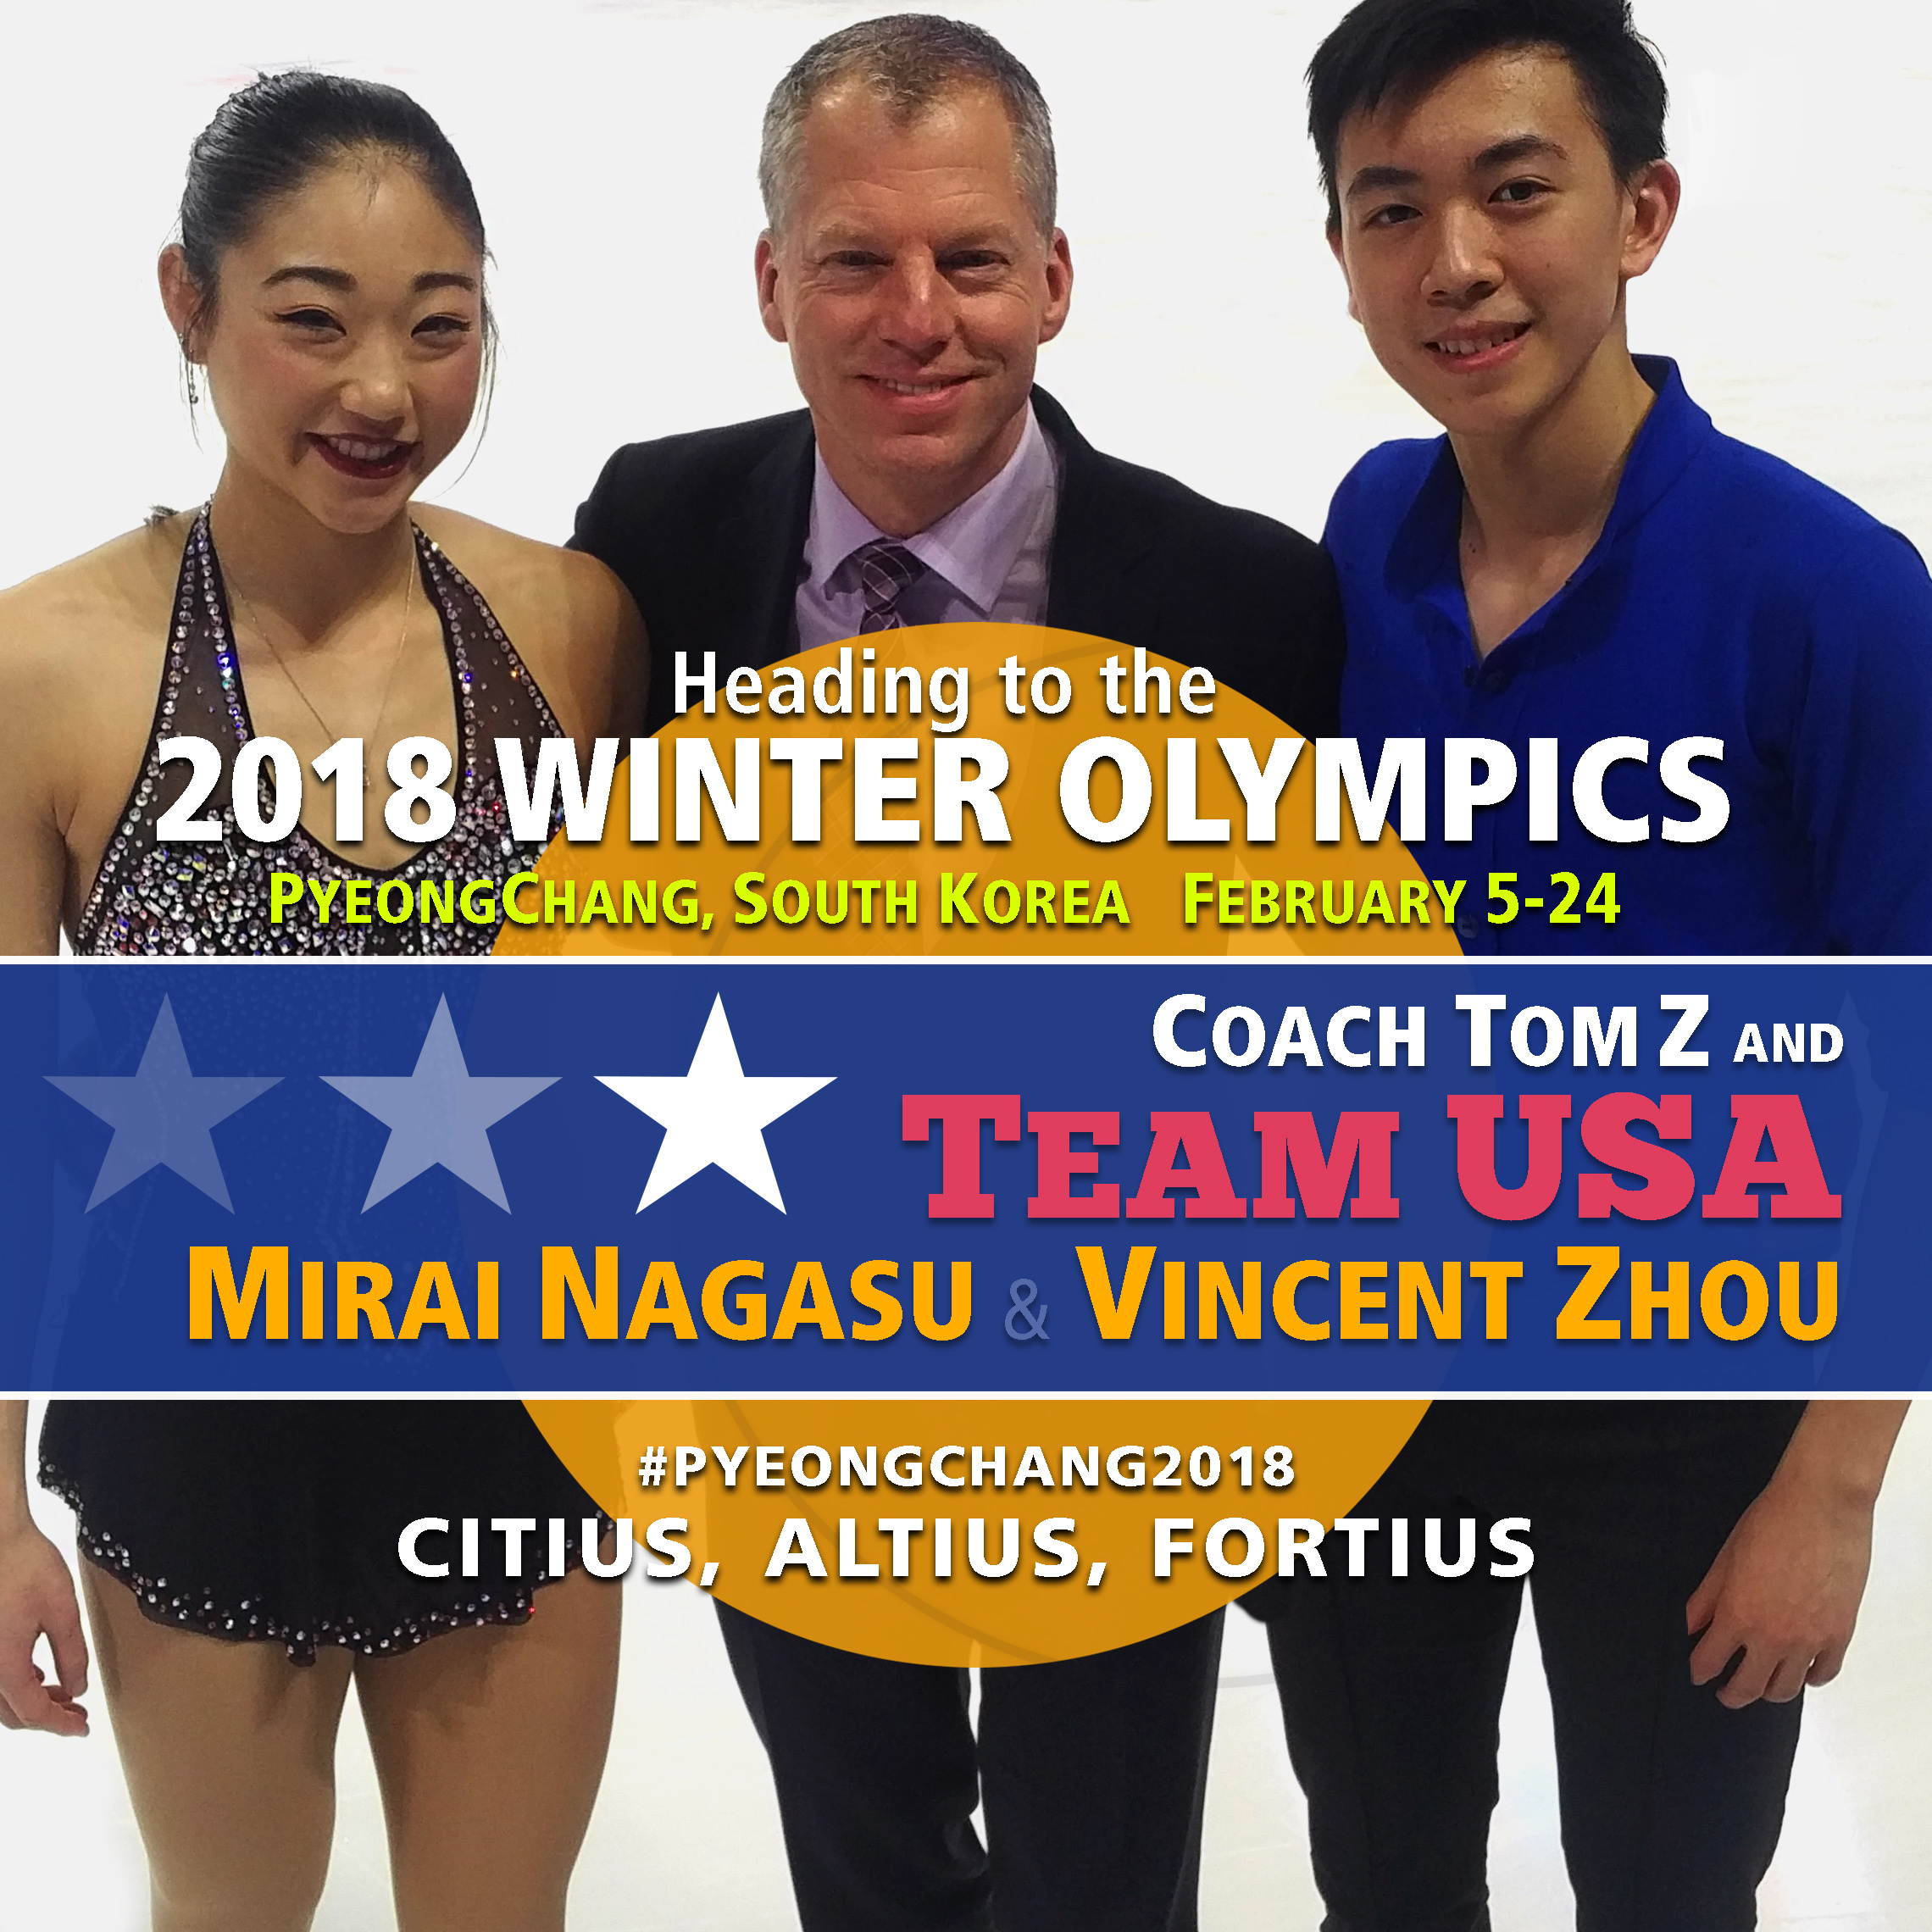 Coach Tom Z will be at the Winter Olympics 2018 with Mirai Nagasu and Vincent Zhou